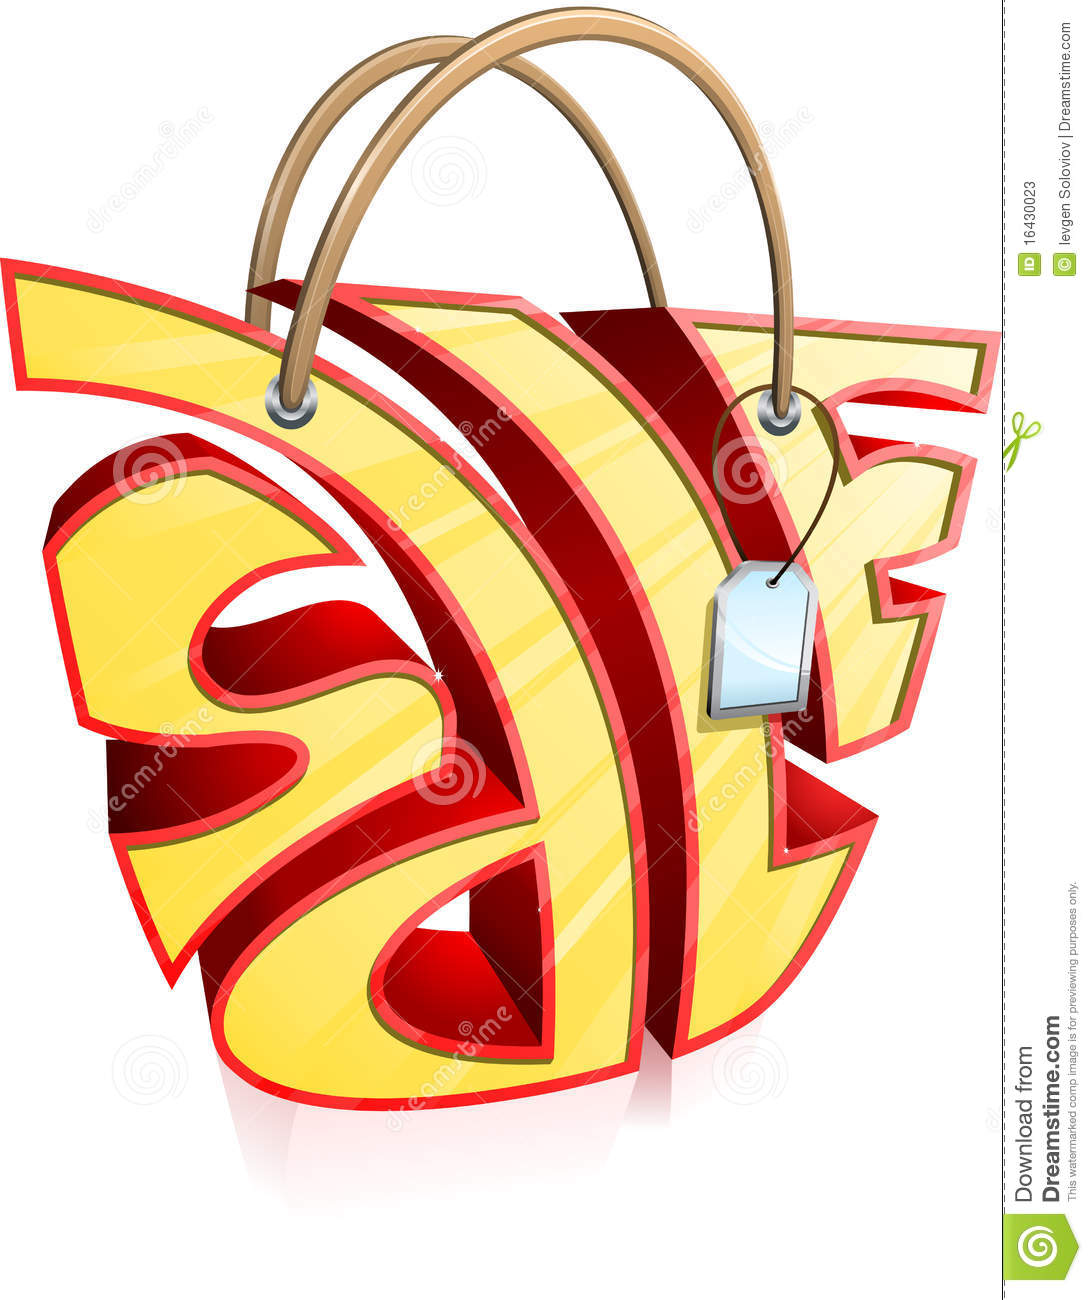 Sale Bag Stock Photos - Image: 16430023